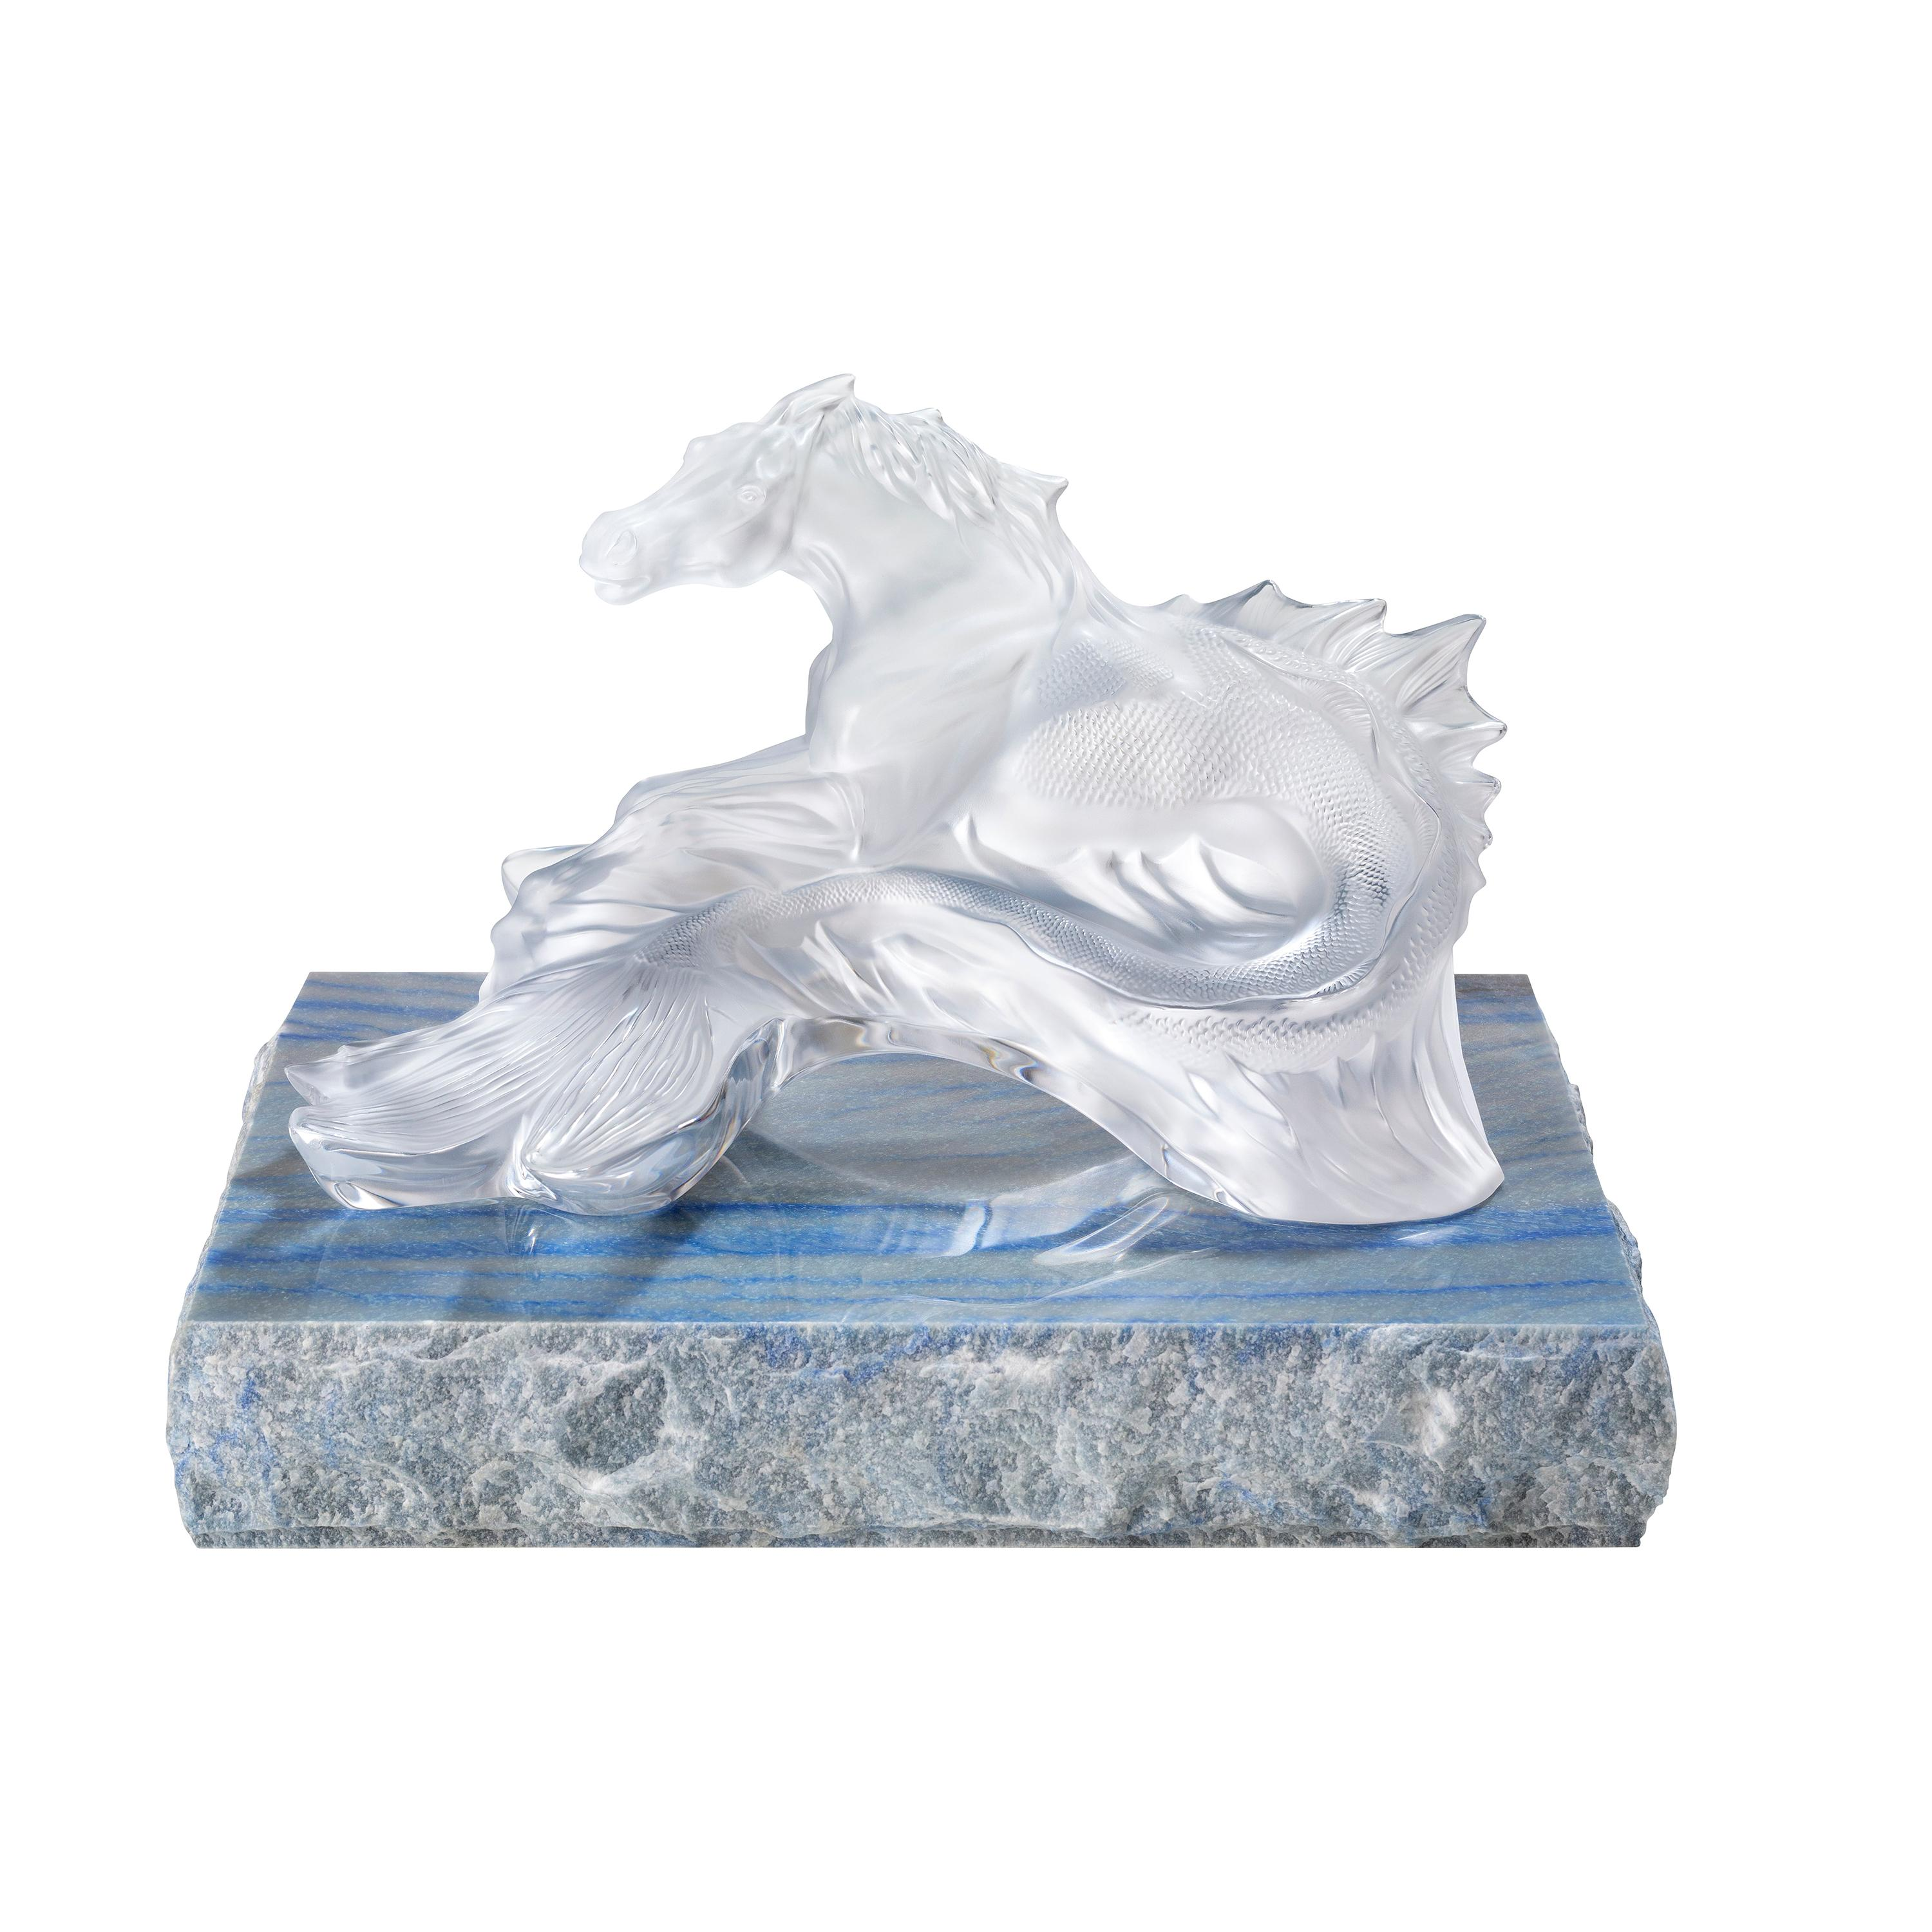 Lalique Poseidon's Horse Sculpture Clear Crystal, Marble Stand